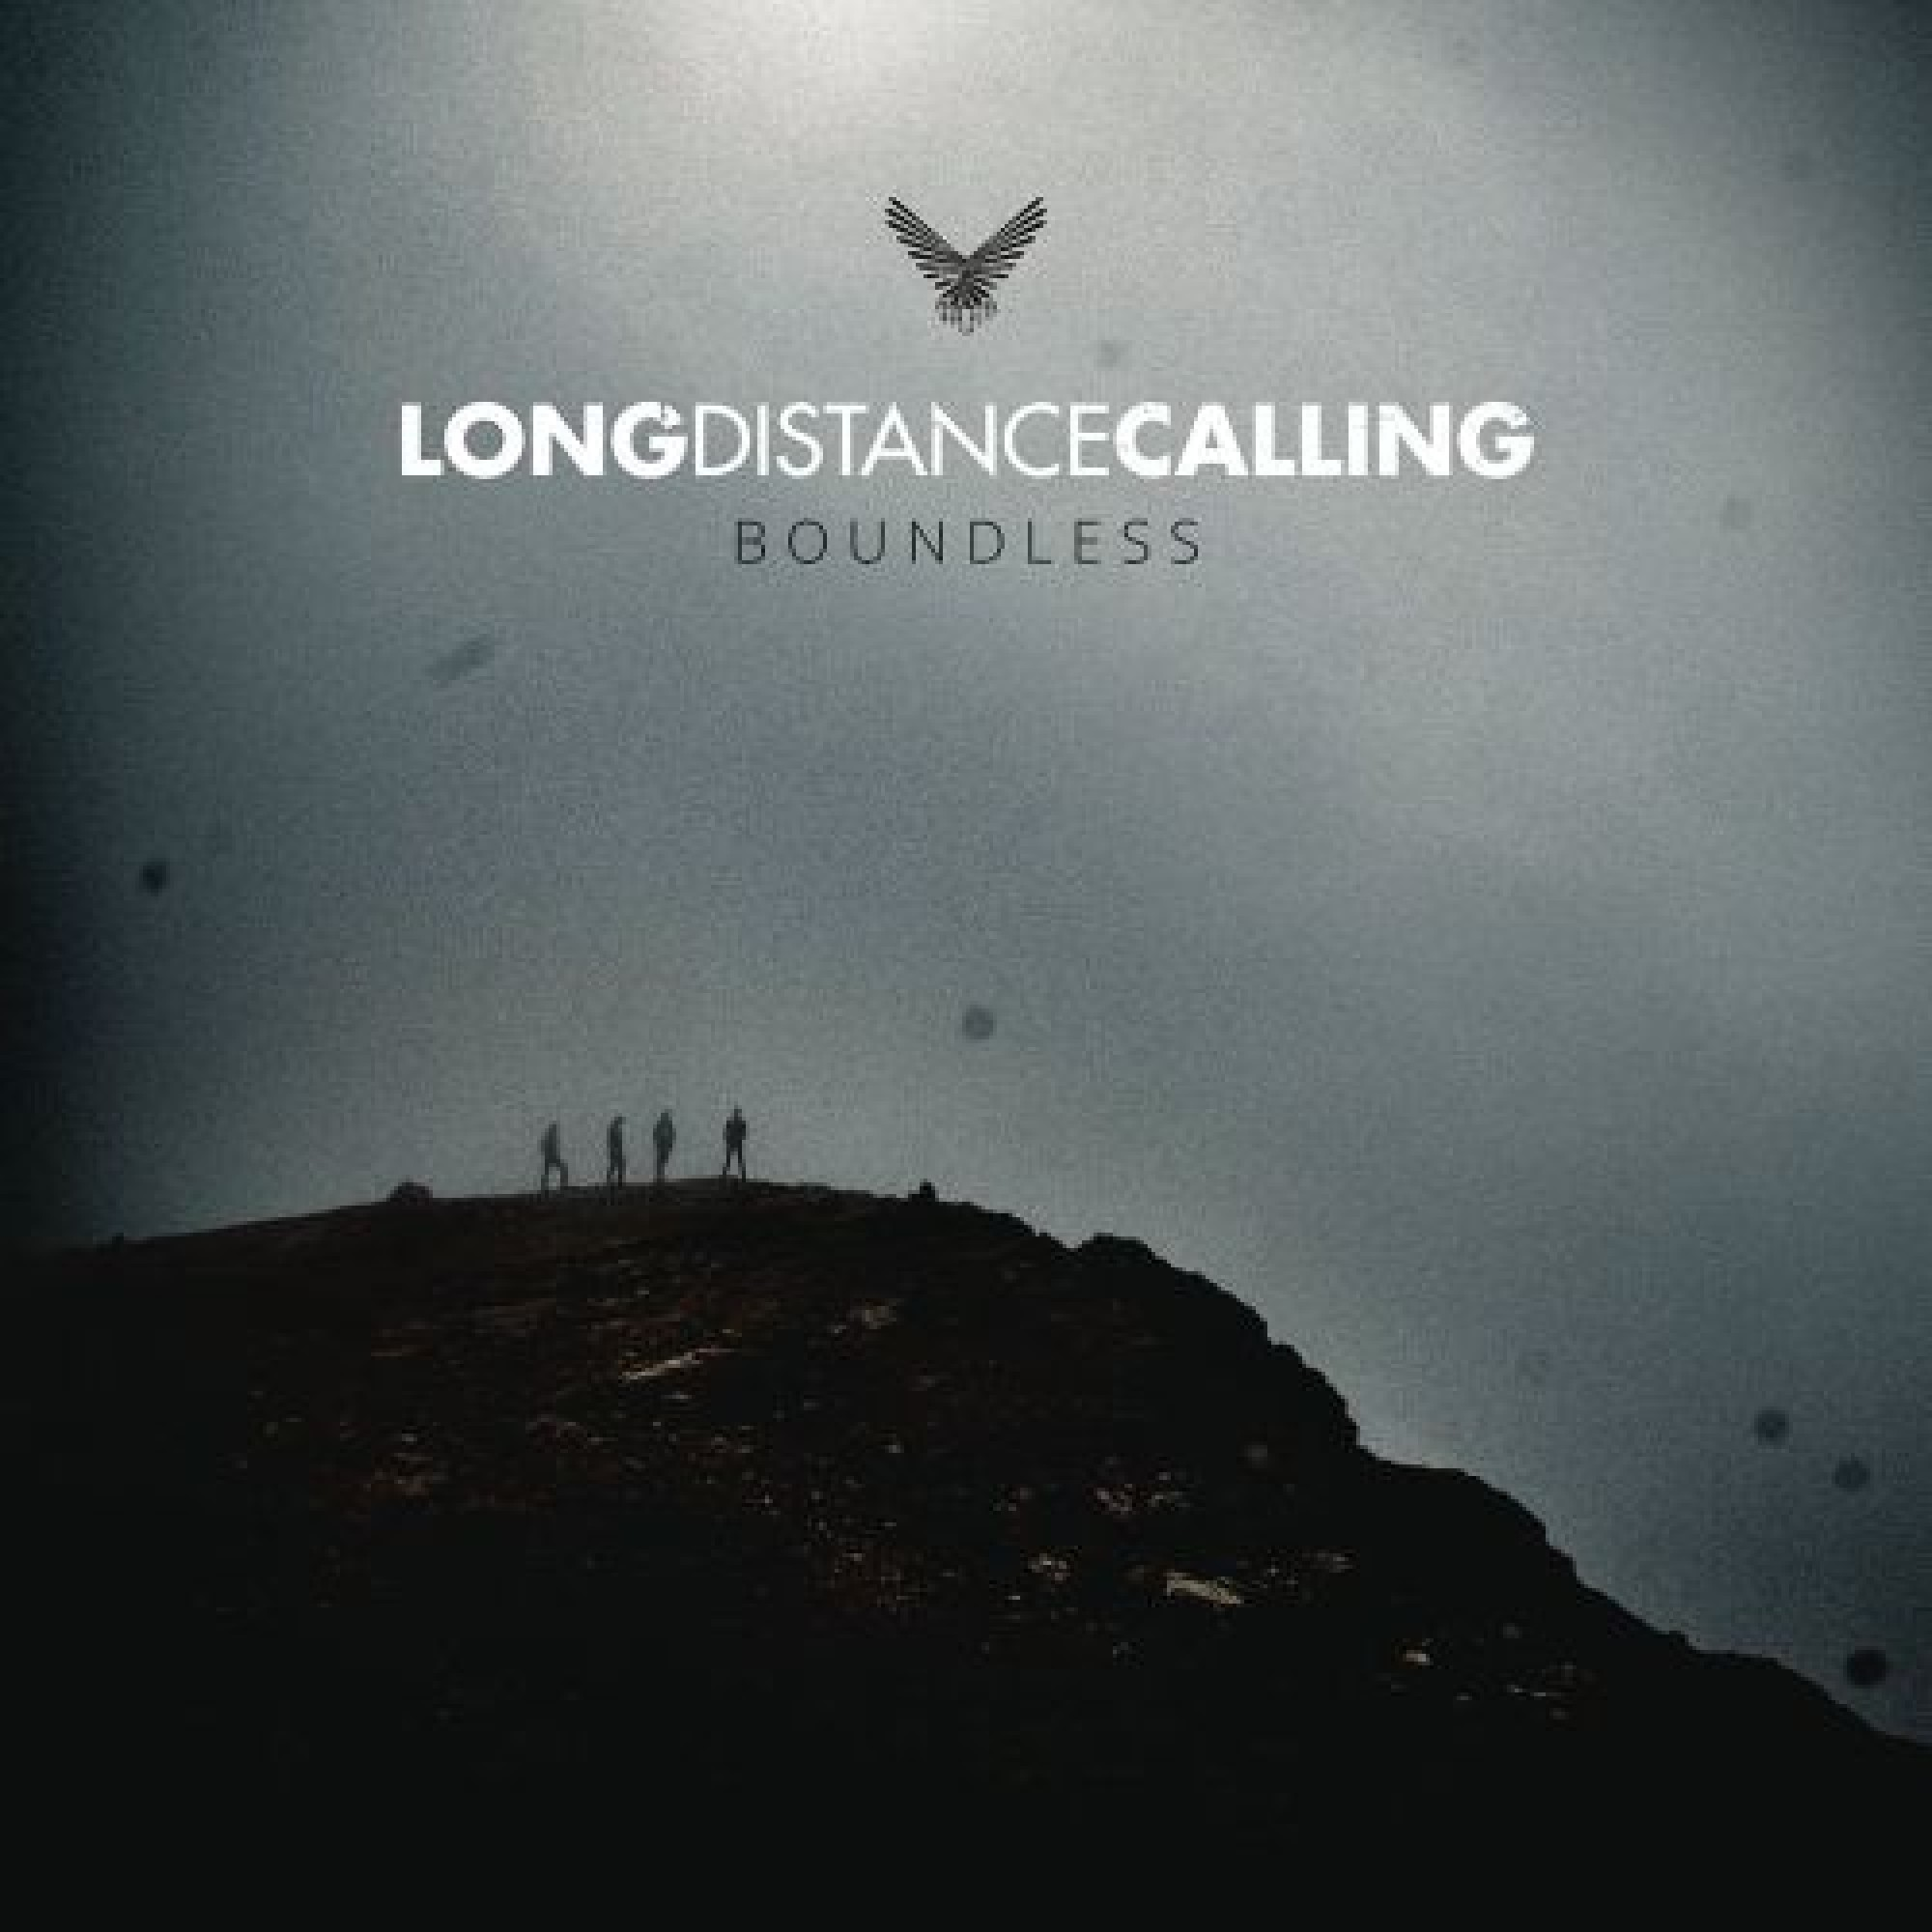 Long Distance Calling : Boundless